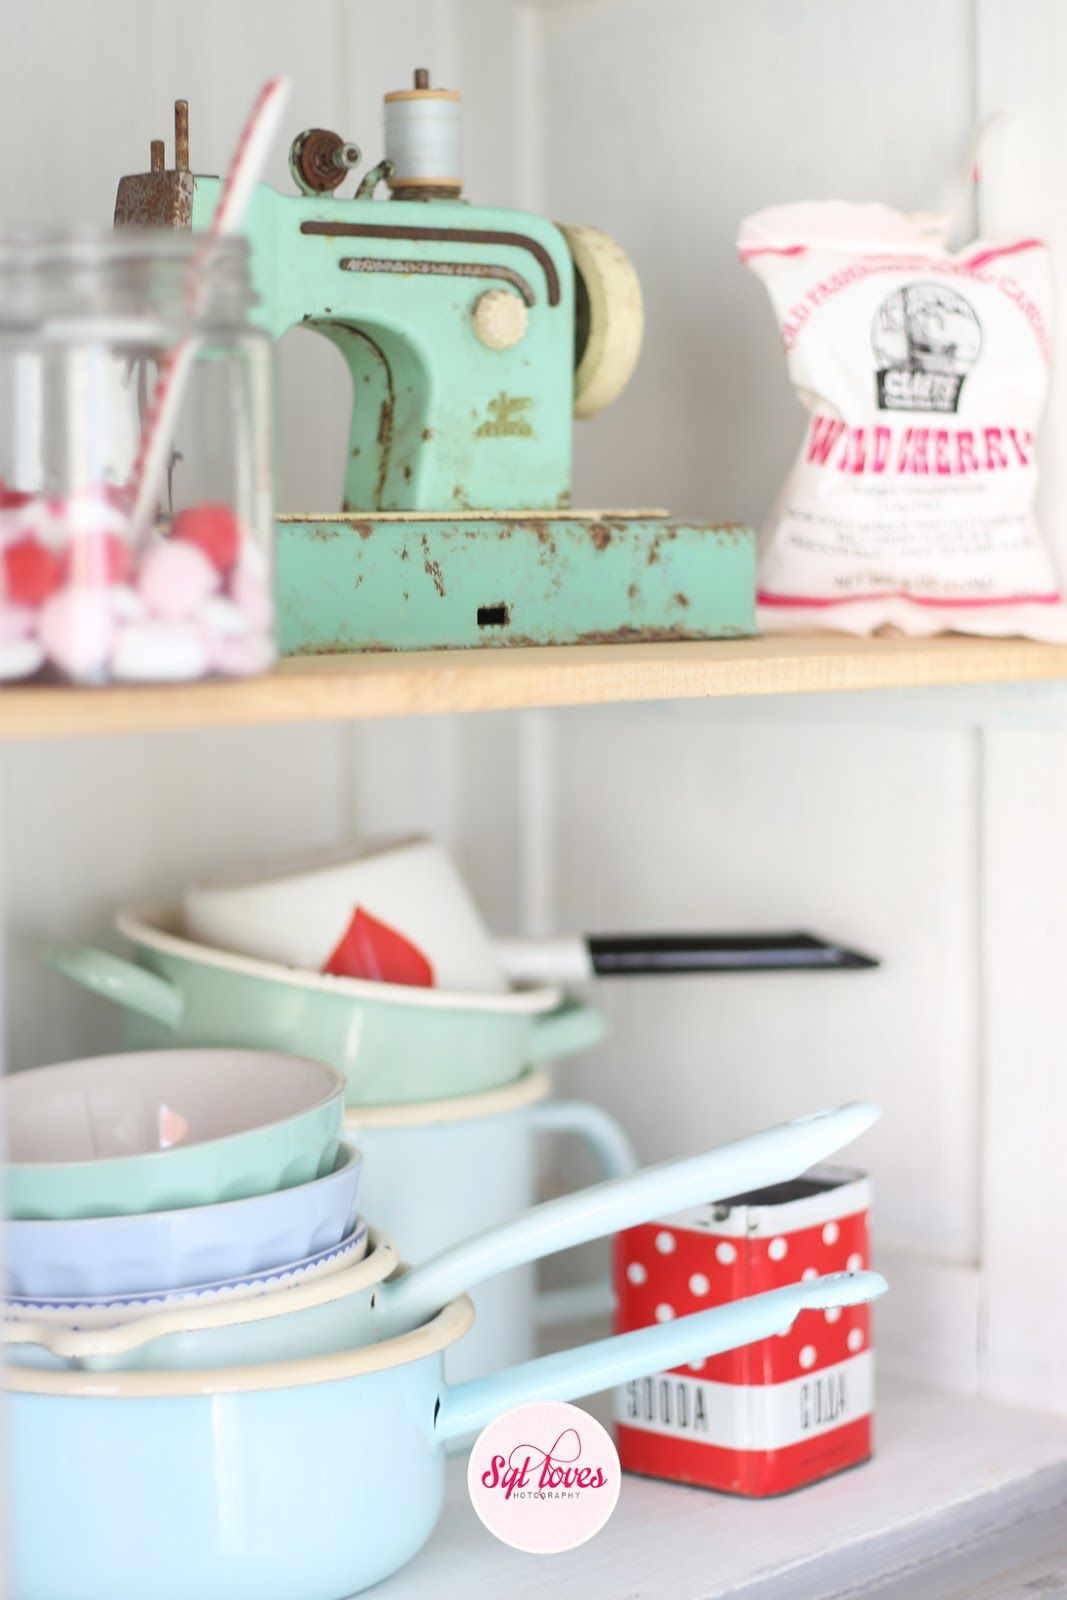 Syl loves, happy kitchen, pastel red, white, retro, minty mint ...